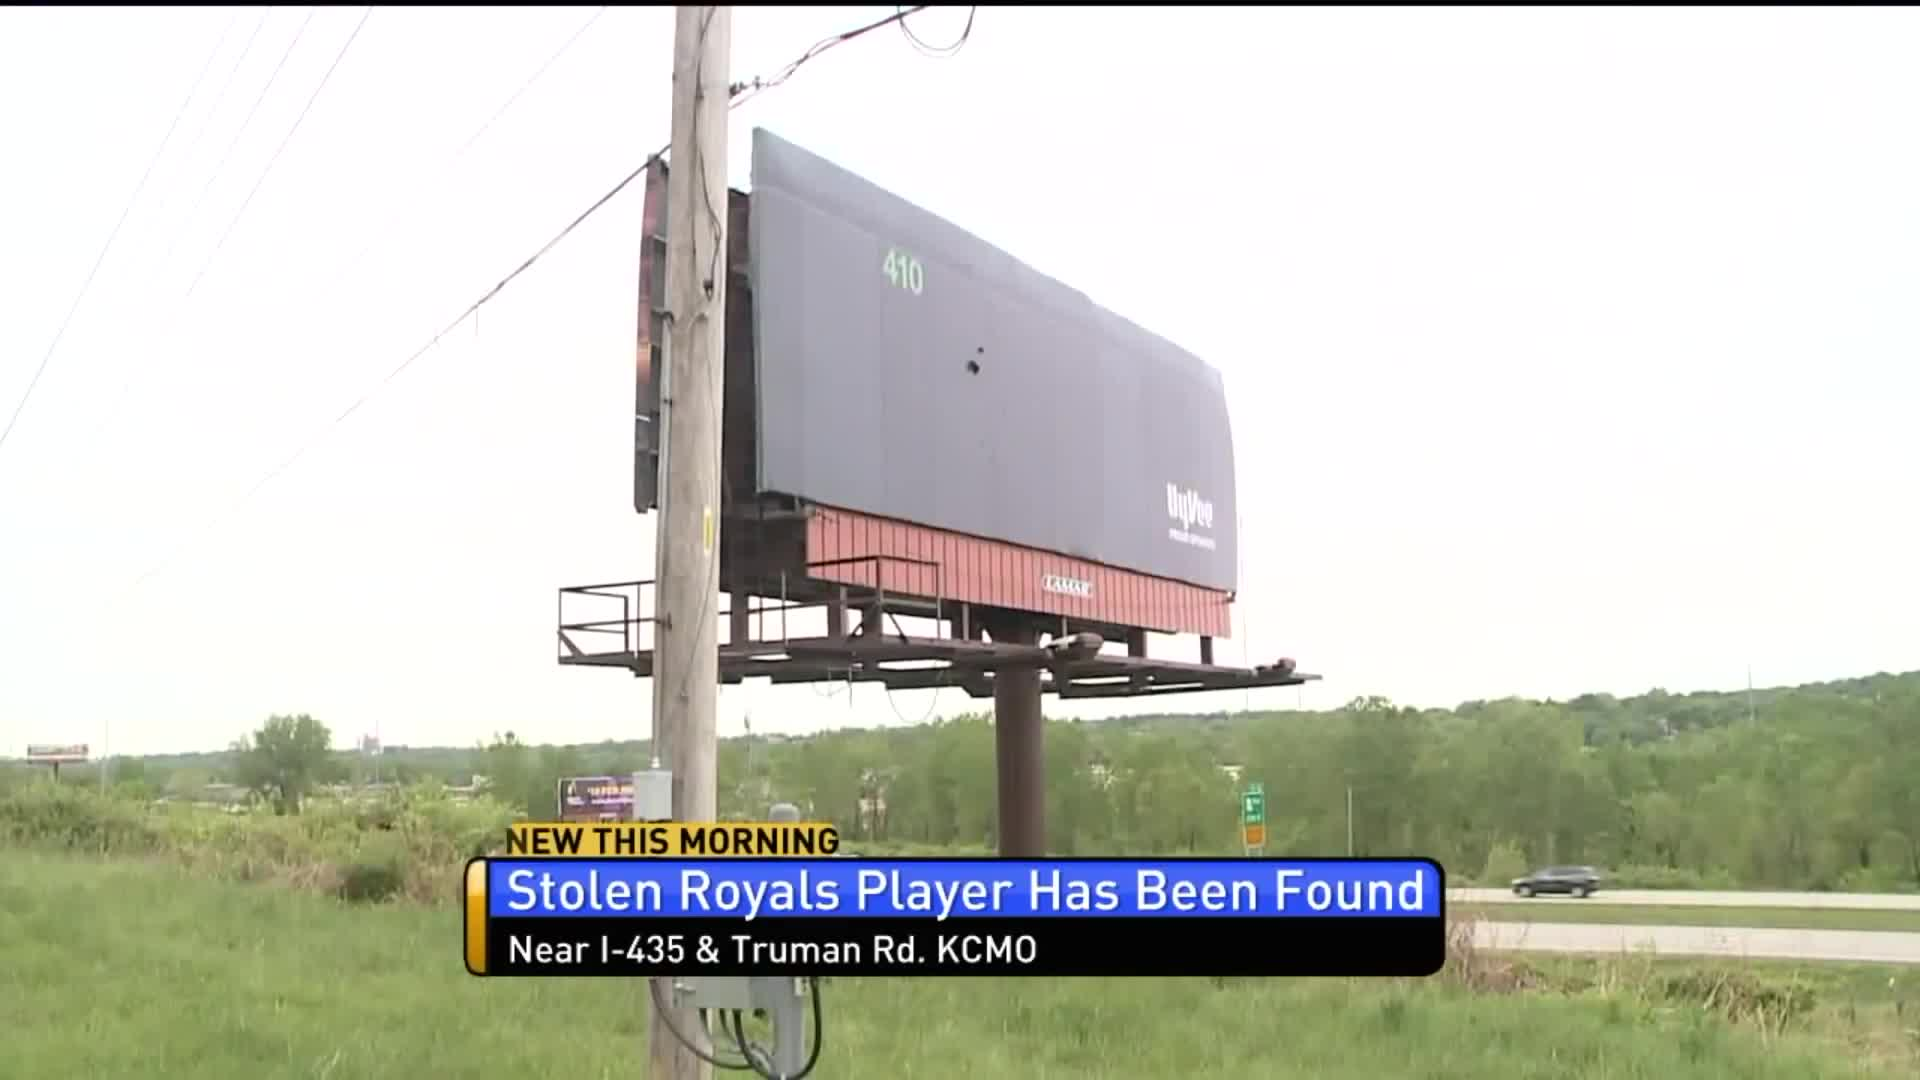 Thieves Return Giant Royals Player That Was Stolen From Billboard